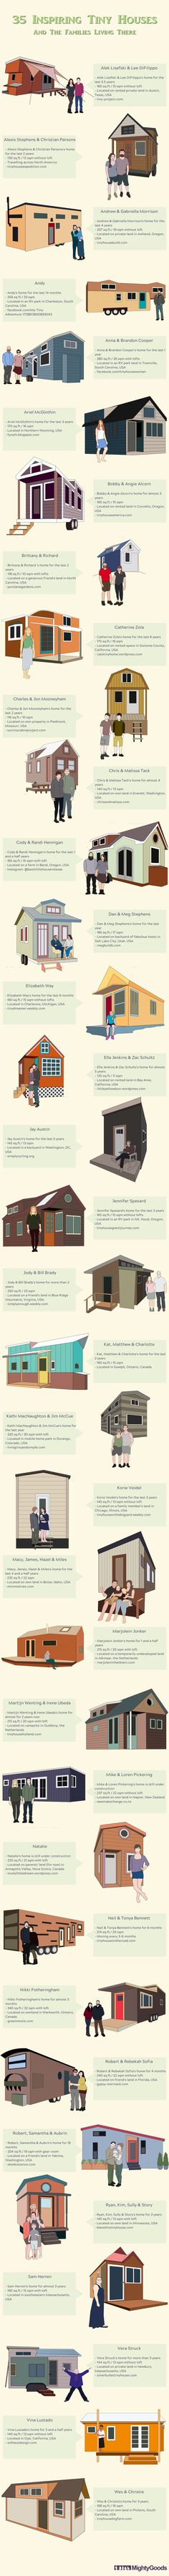 35 Inspiring Tiny Houses and the Families Living There